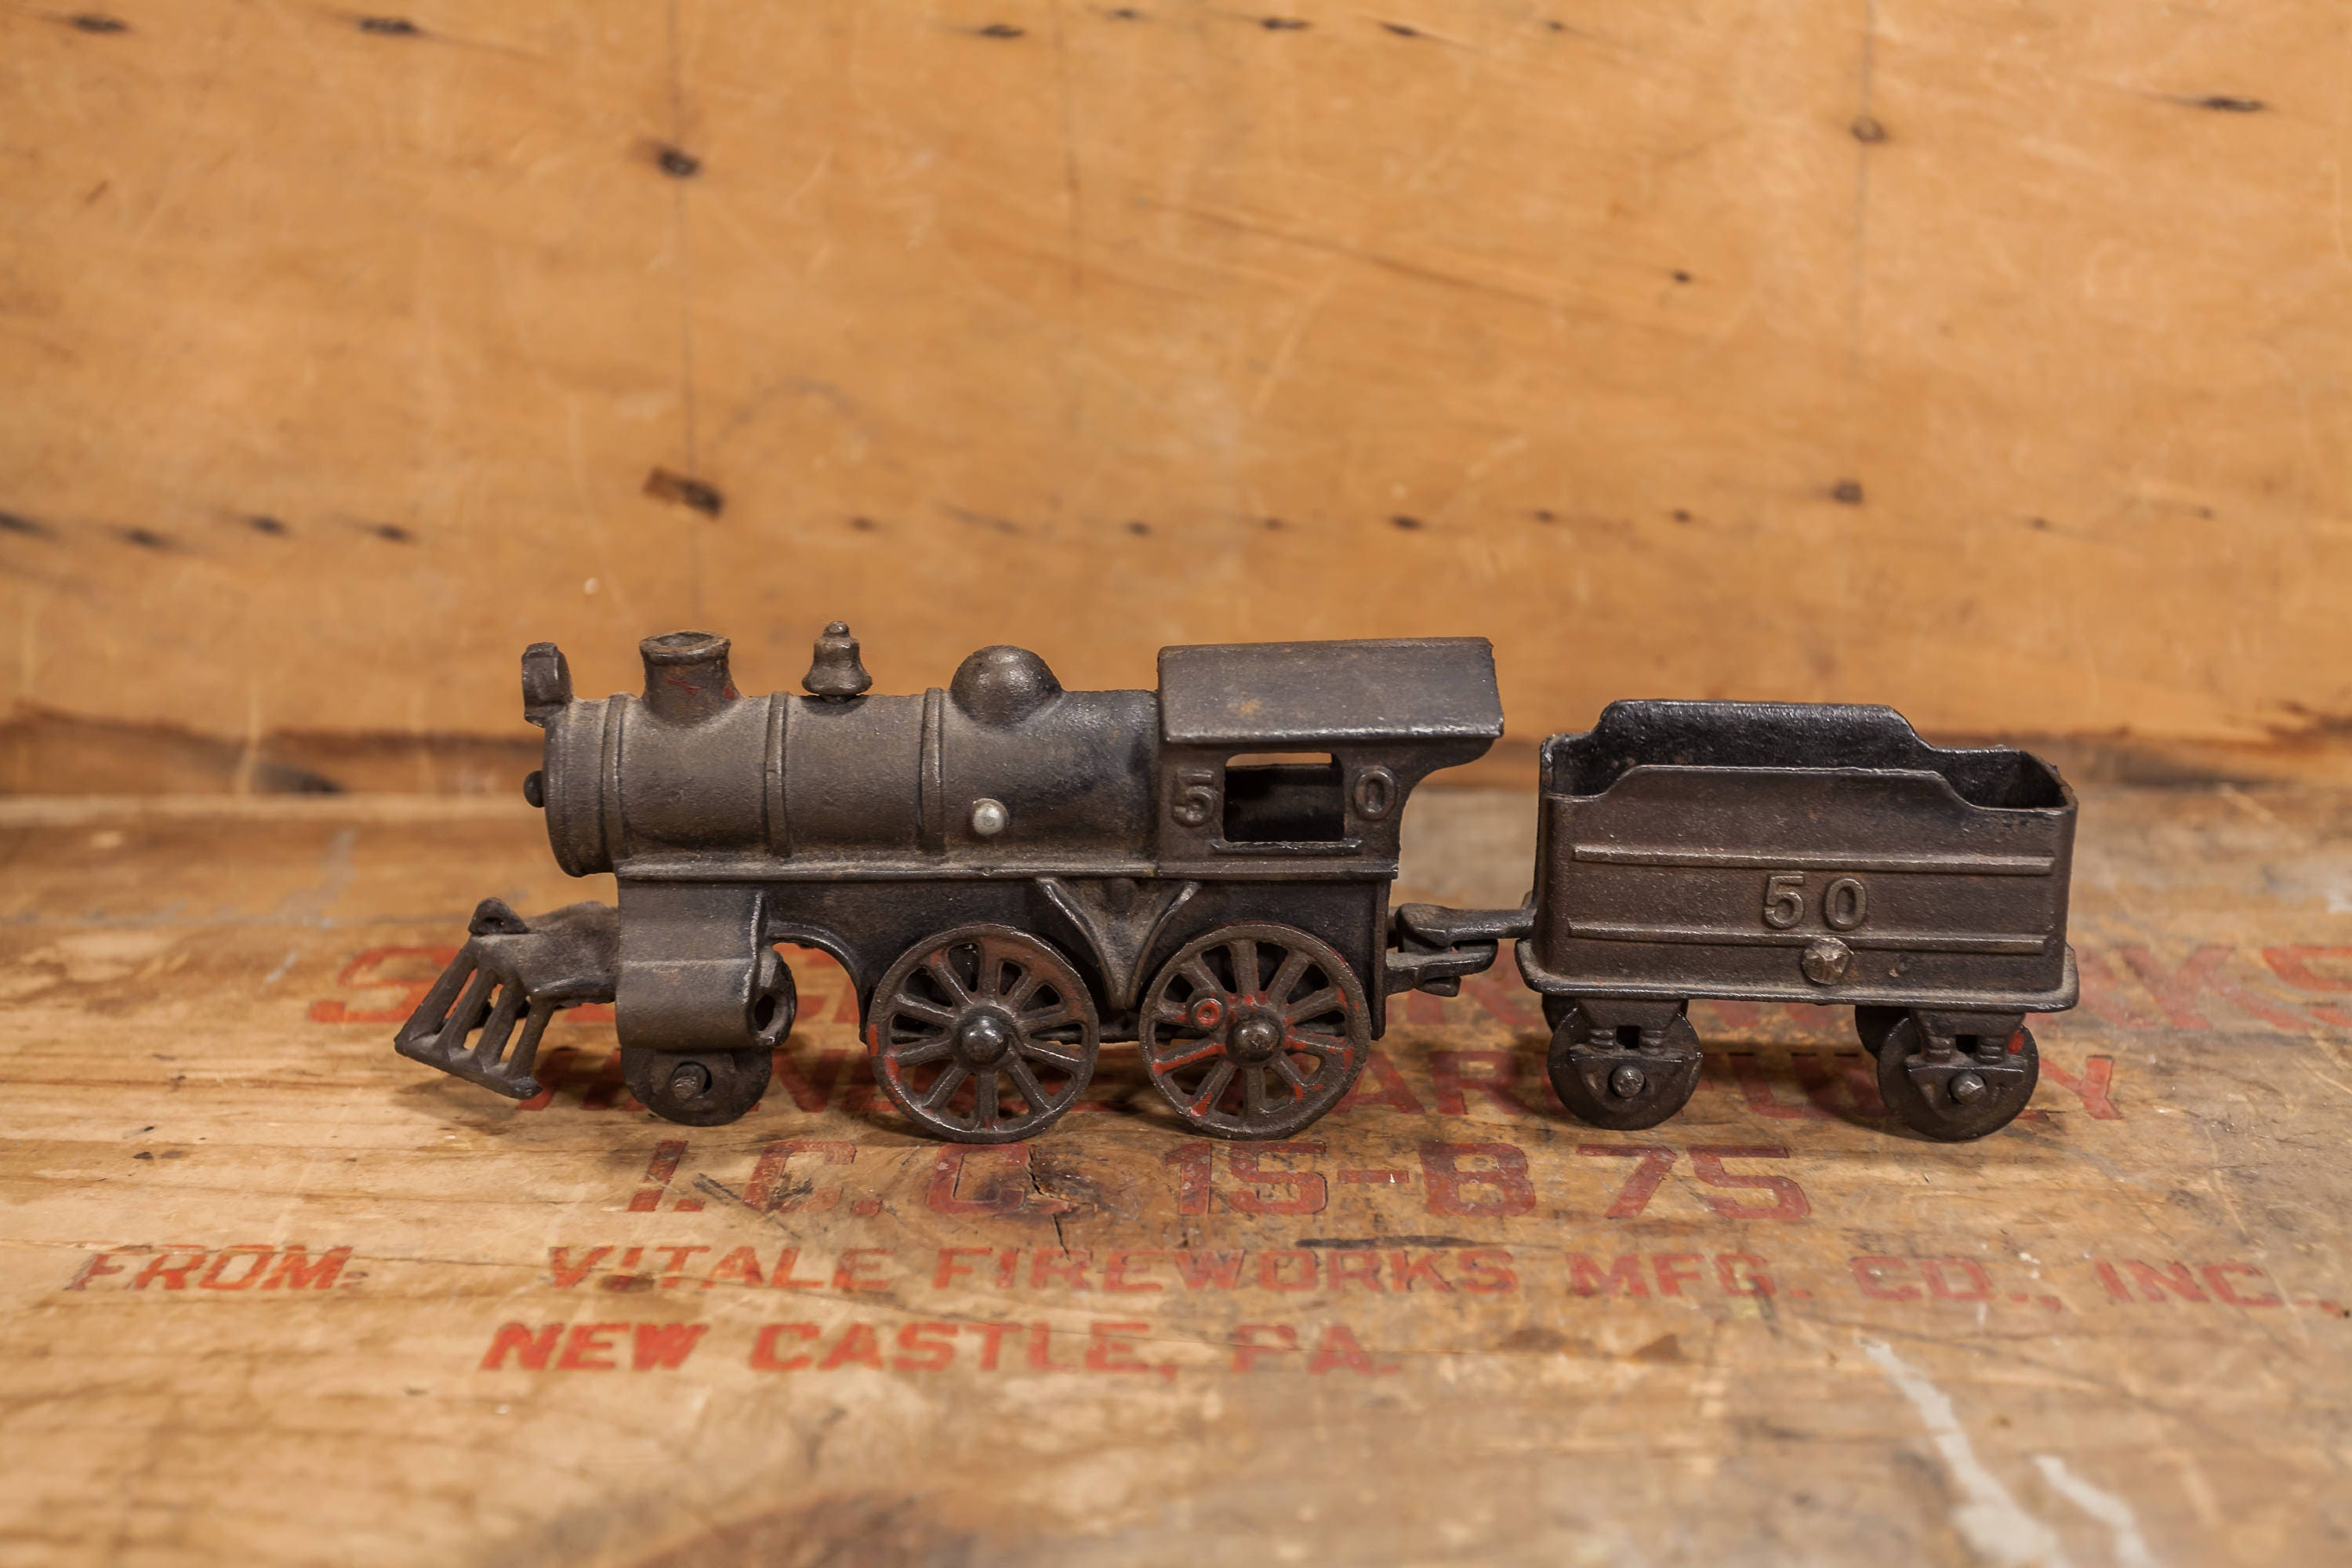 Nycrr Cast Iron Train: Vintage Cast Iron Train Engine No. 50 LocomotiveIce Coal